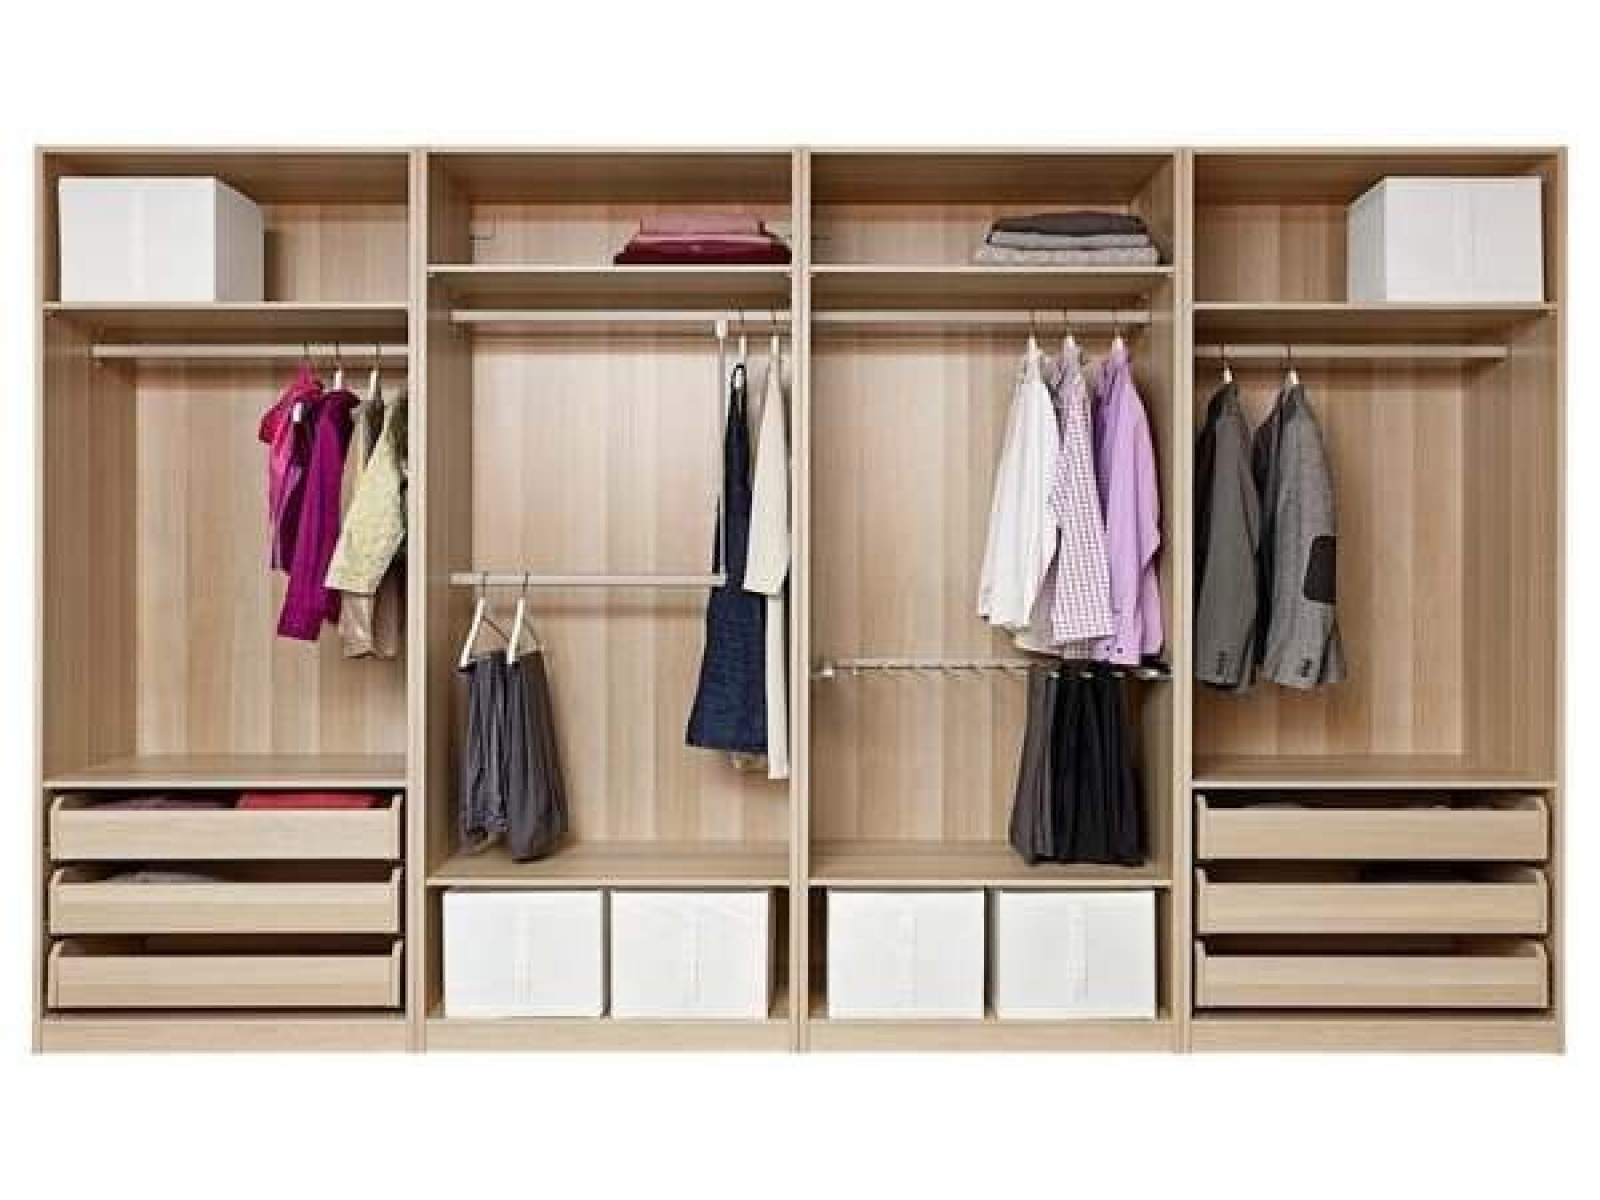 Delightful Drawers For Closet Roselawnlutheran Pertaining To Wardrobe With Shelves And Drawers (View 7 of 15)